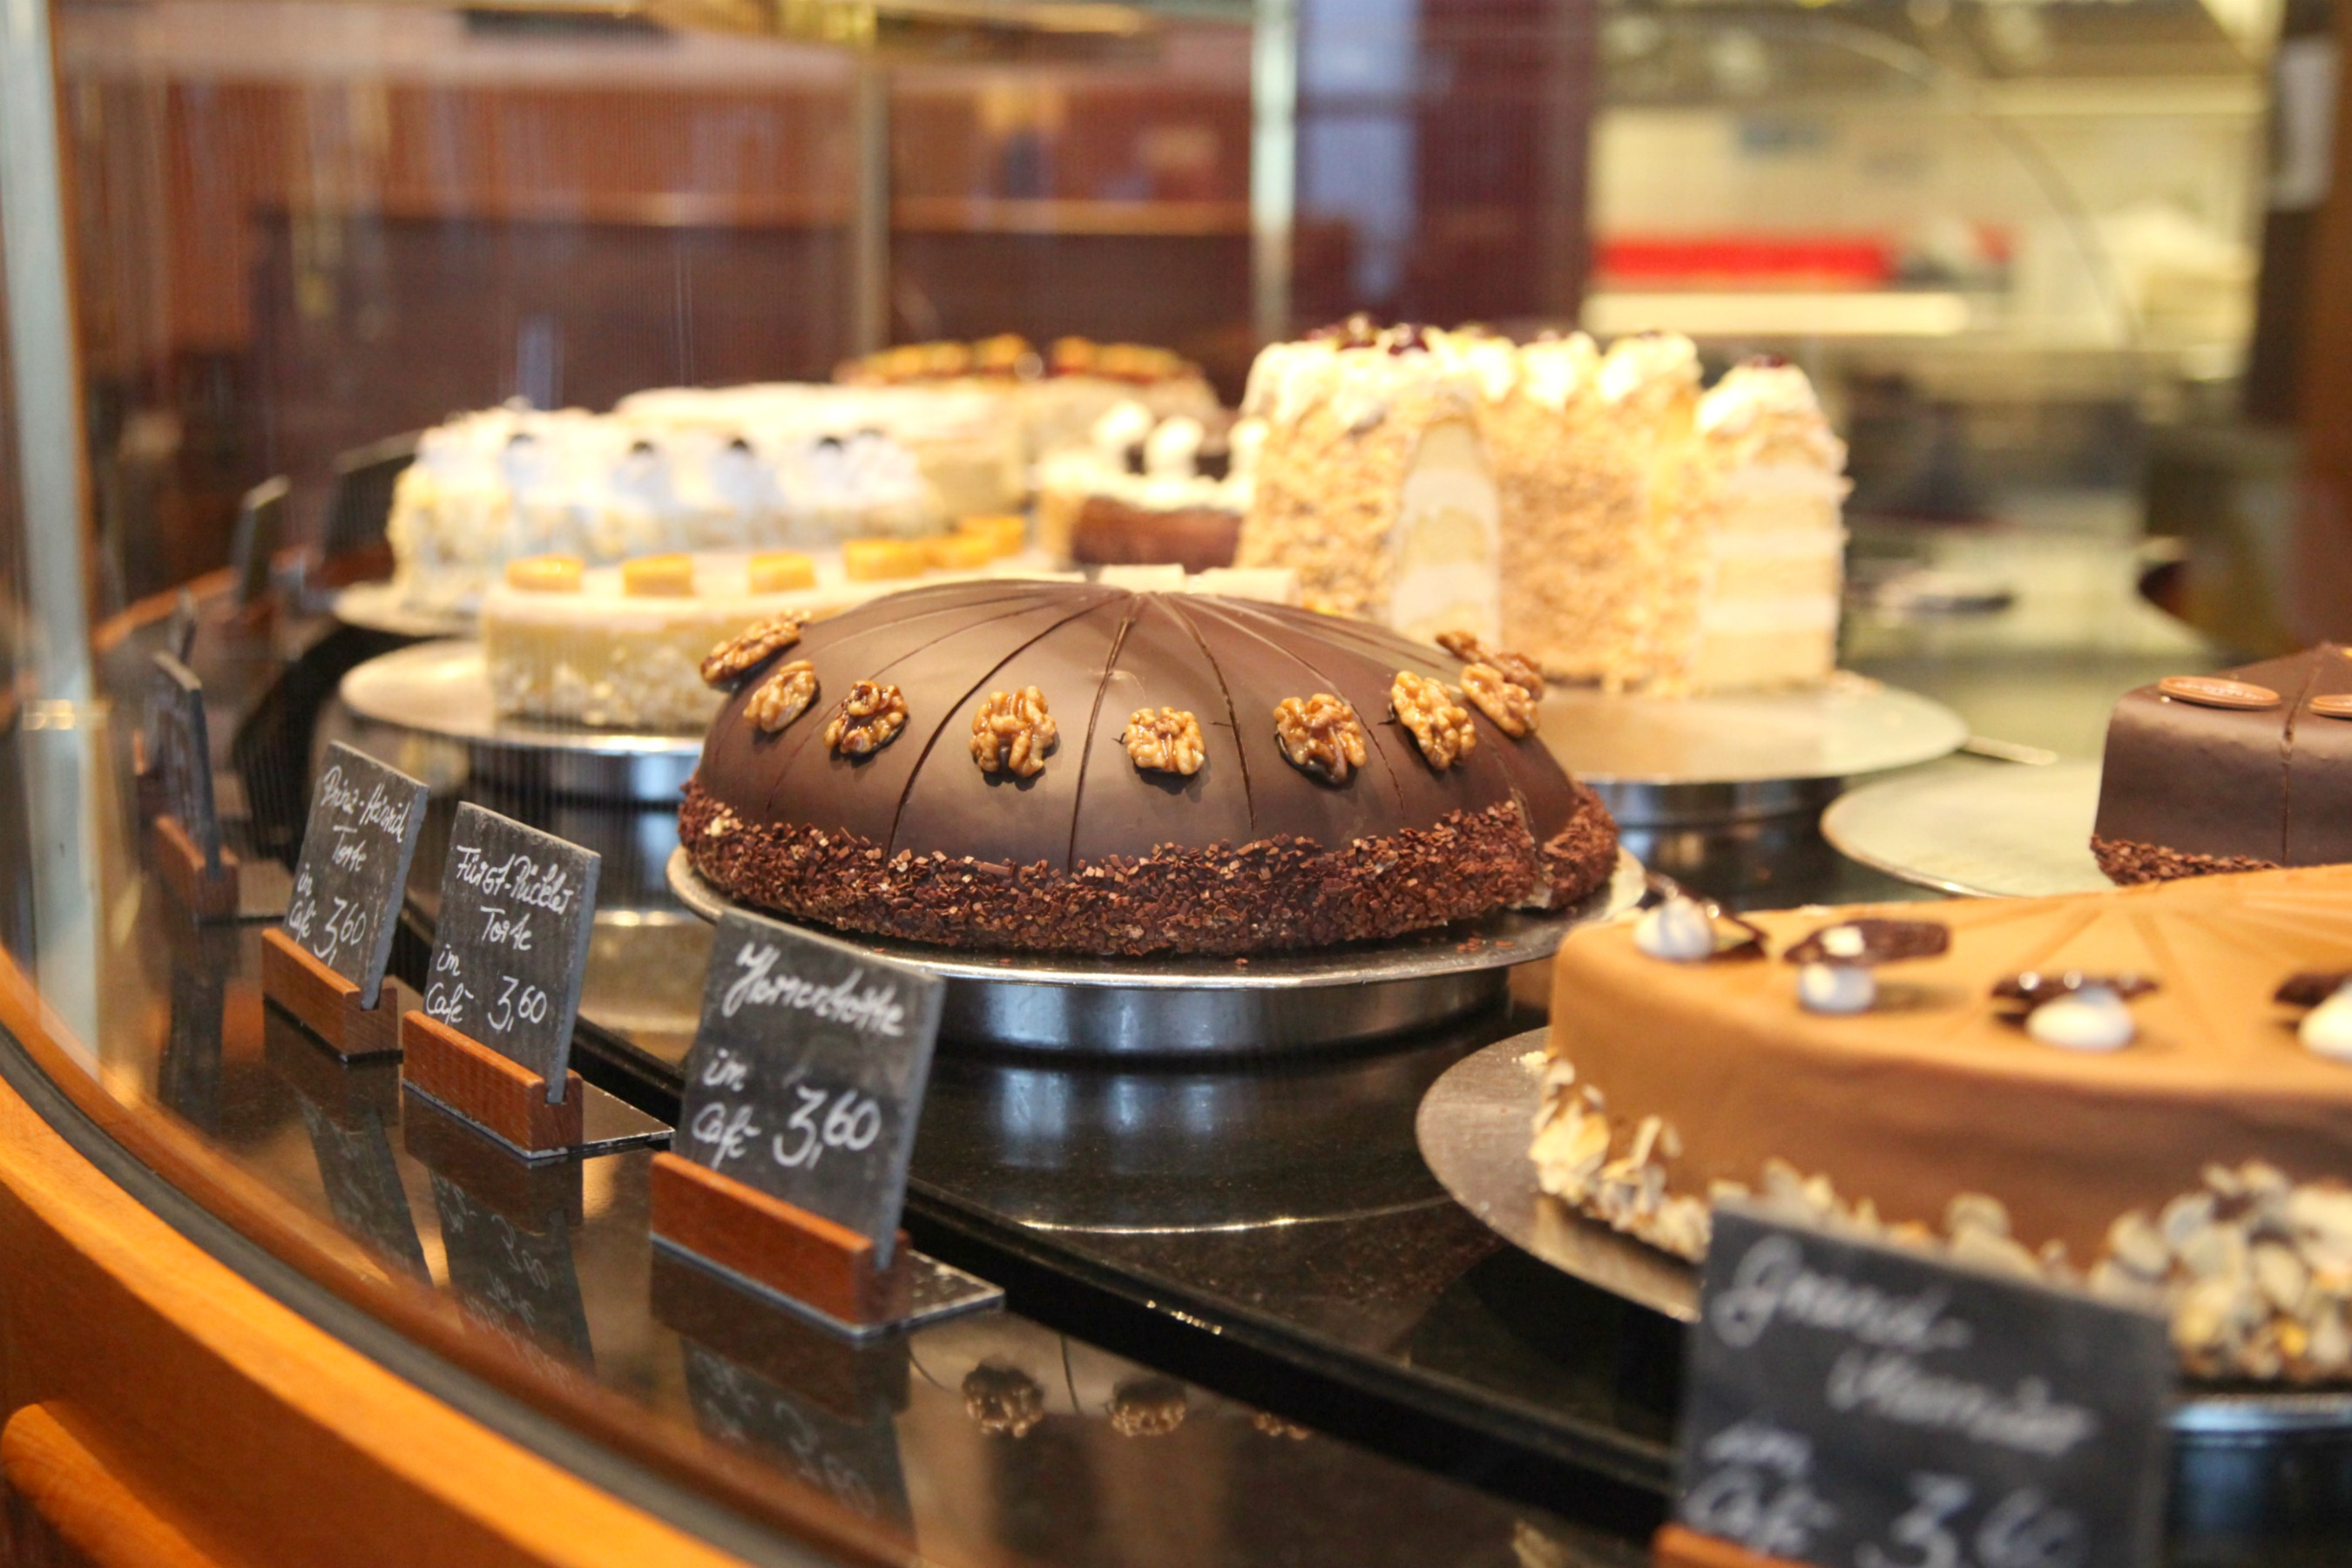 Fantastic cakes at Cafe Niederegger in Lübeck